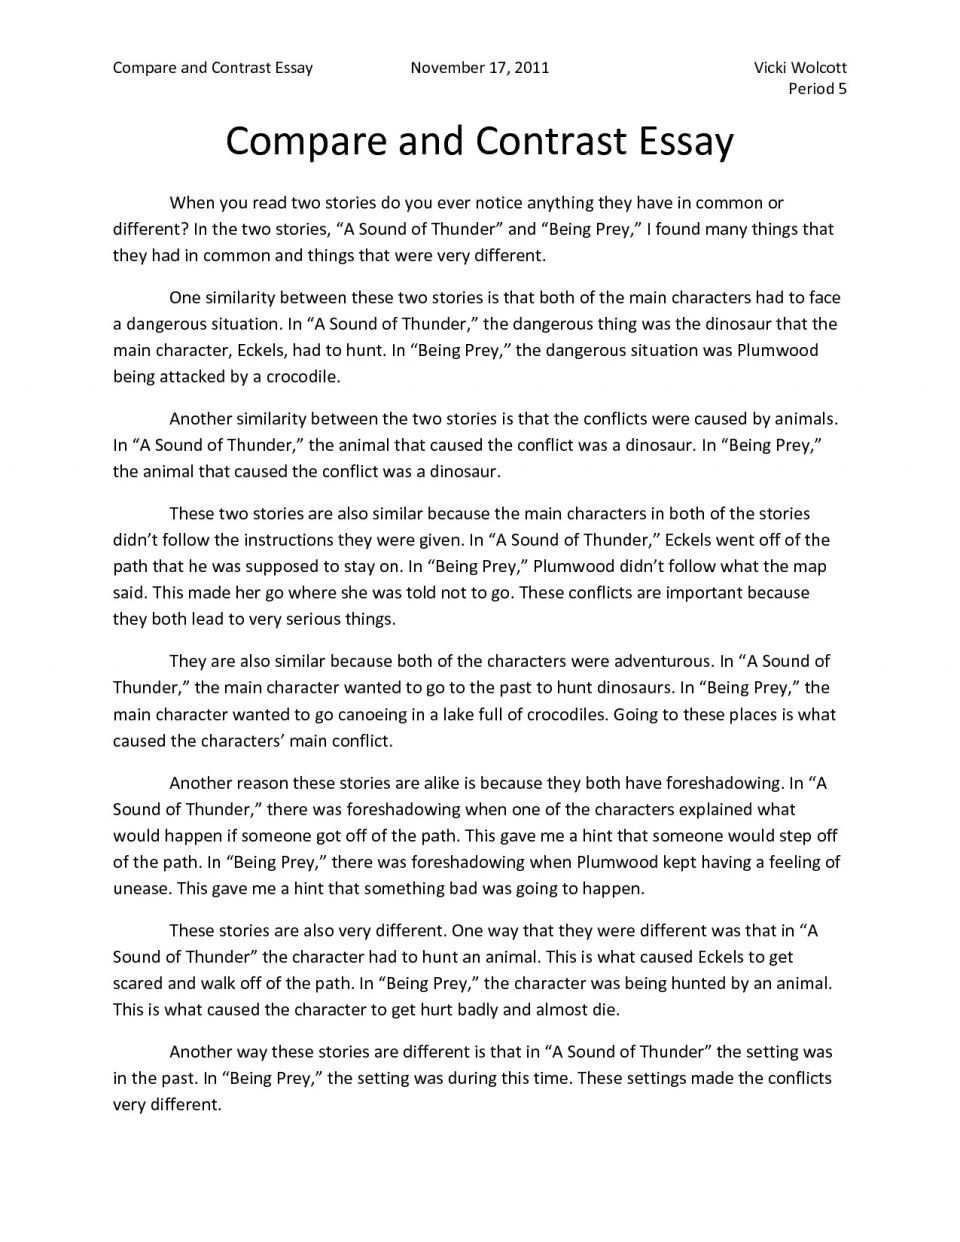 006 Comparing And Contrasting Essay Example Satire Examples Of Comparison Contrast Essays Com How To Write Outstanding A Compare Format Block Conclusion Paragraph For 960